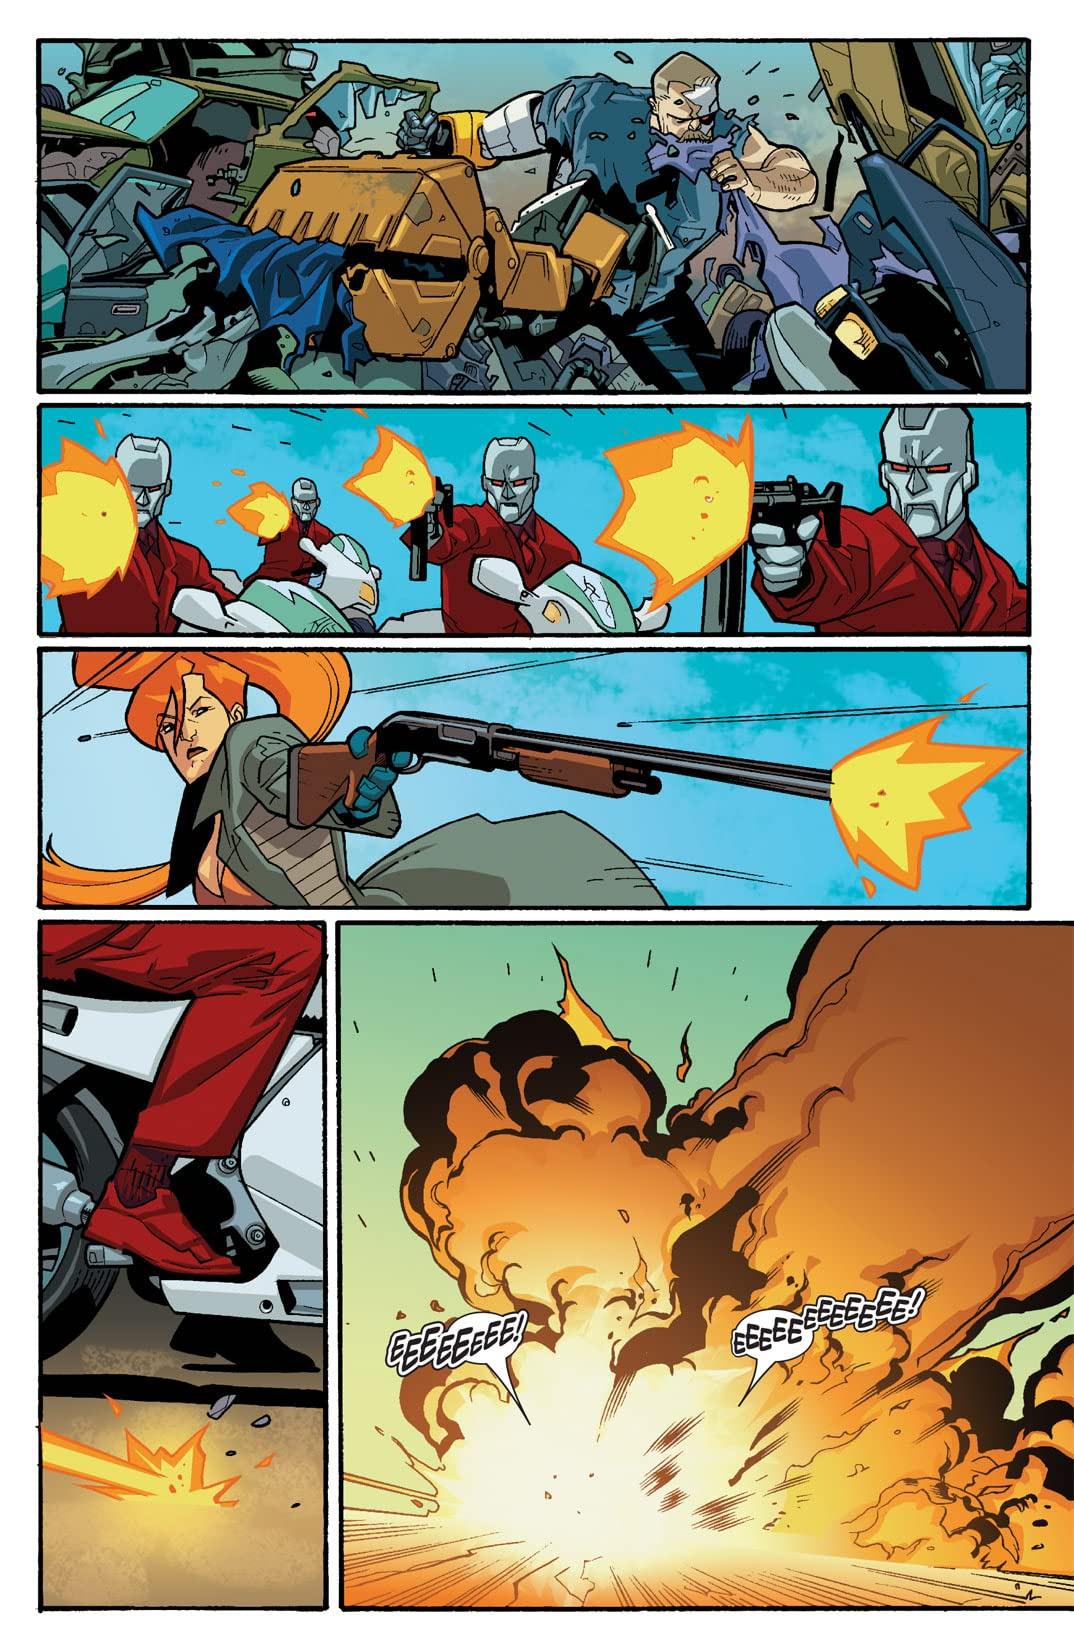 Nextwave: Agents of HATE #4